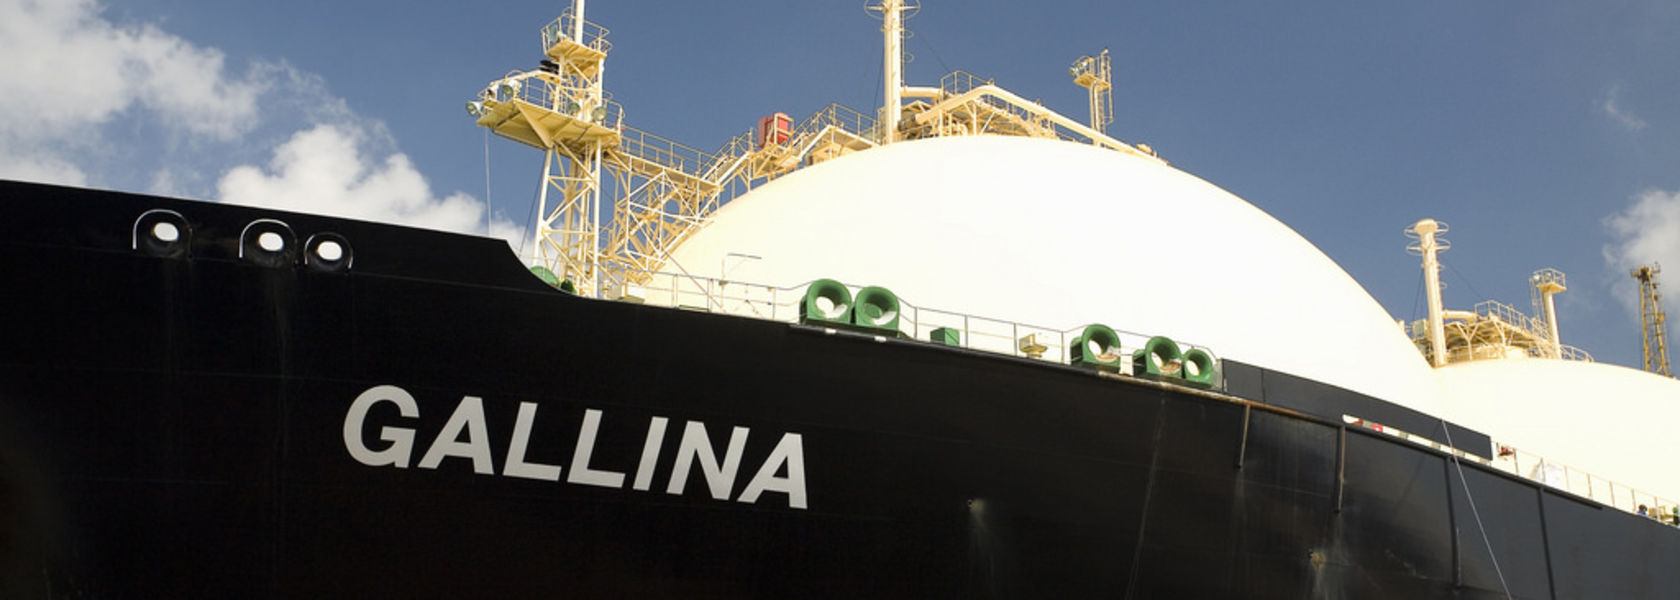 Asian LNG demand continues to exceed expectations: Shell